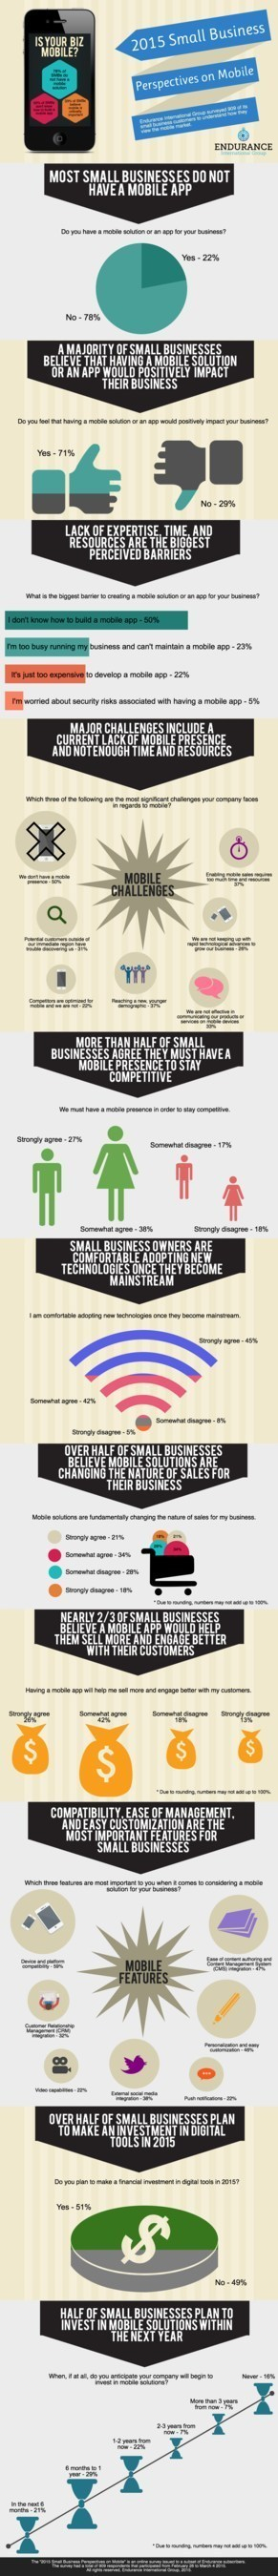 2015 Small Business Perspectives on Mobile Infographic